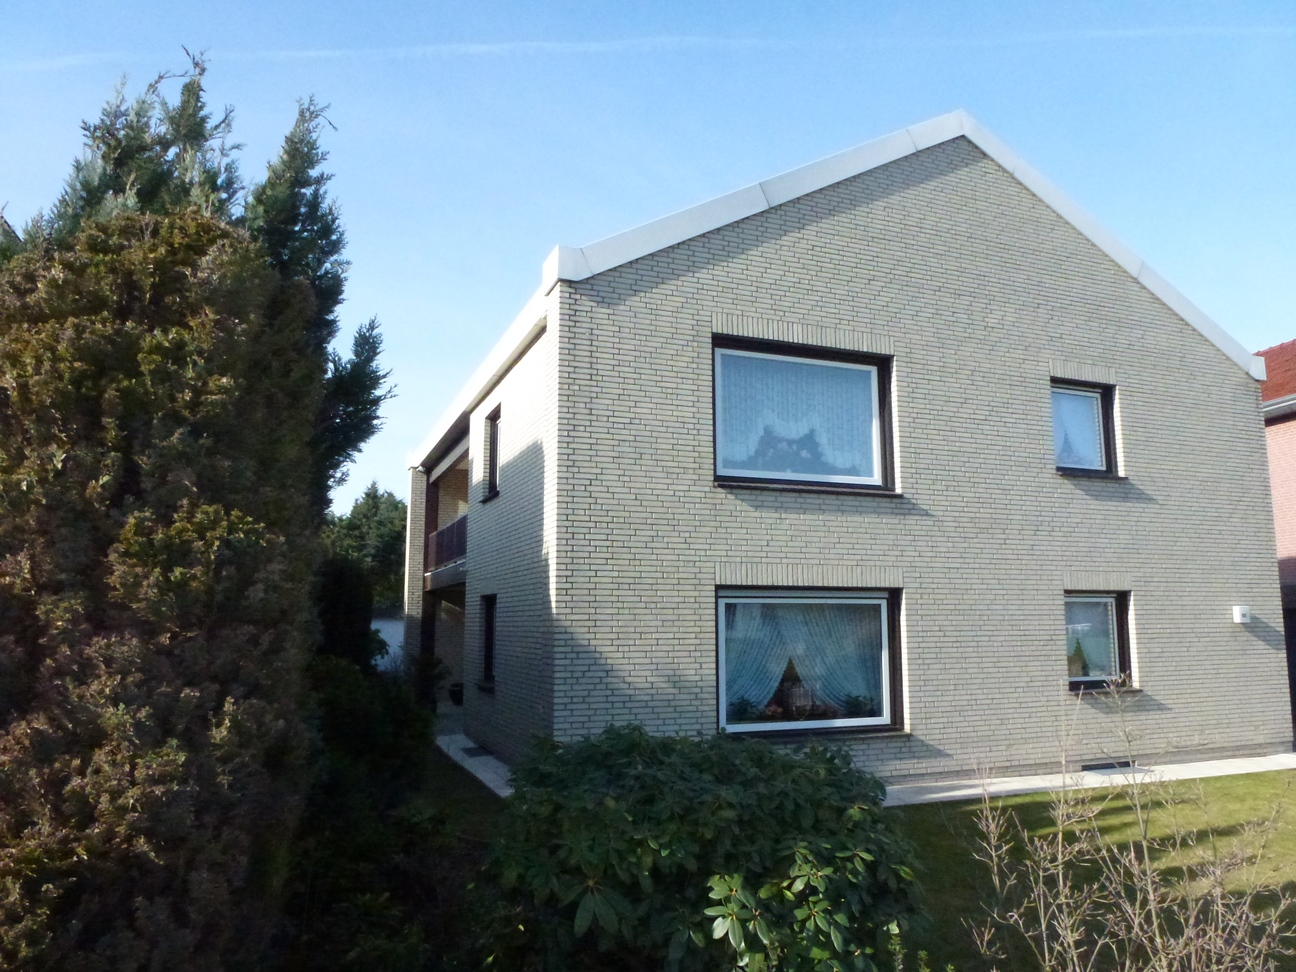 Ger umige 3 zimmer wohnung mit gro er loggia classic for Wohnung immobilien